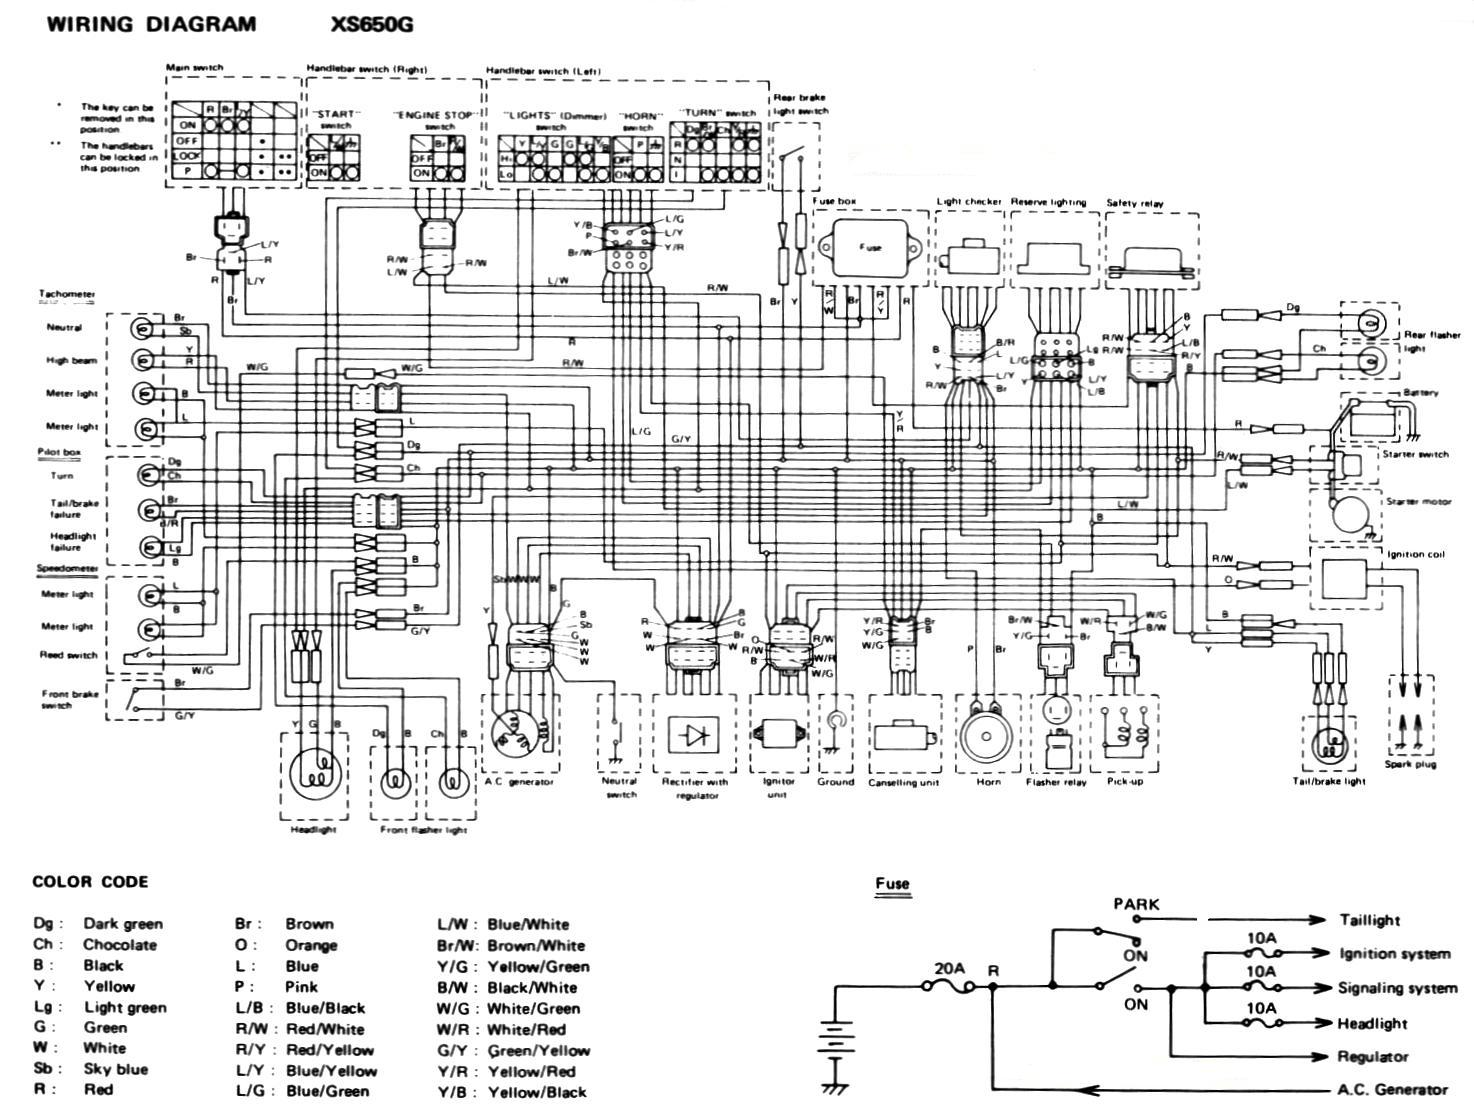 80XS650G Xs Wiring Harness Diagram on xs650 chopper wiring, xs650 simplified wiring, xs650 1982 rectifier wiring, xs650 bobber wiring,